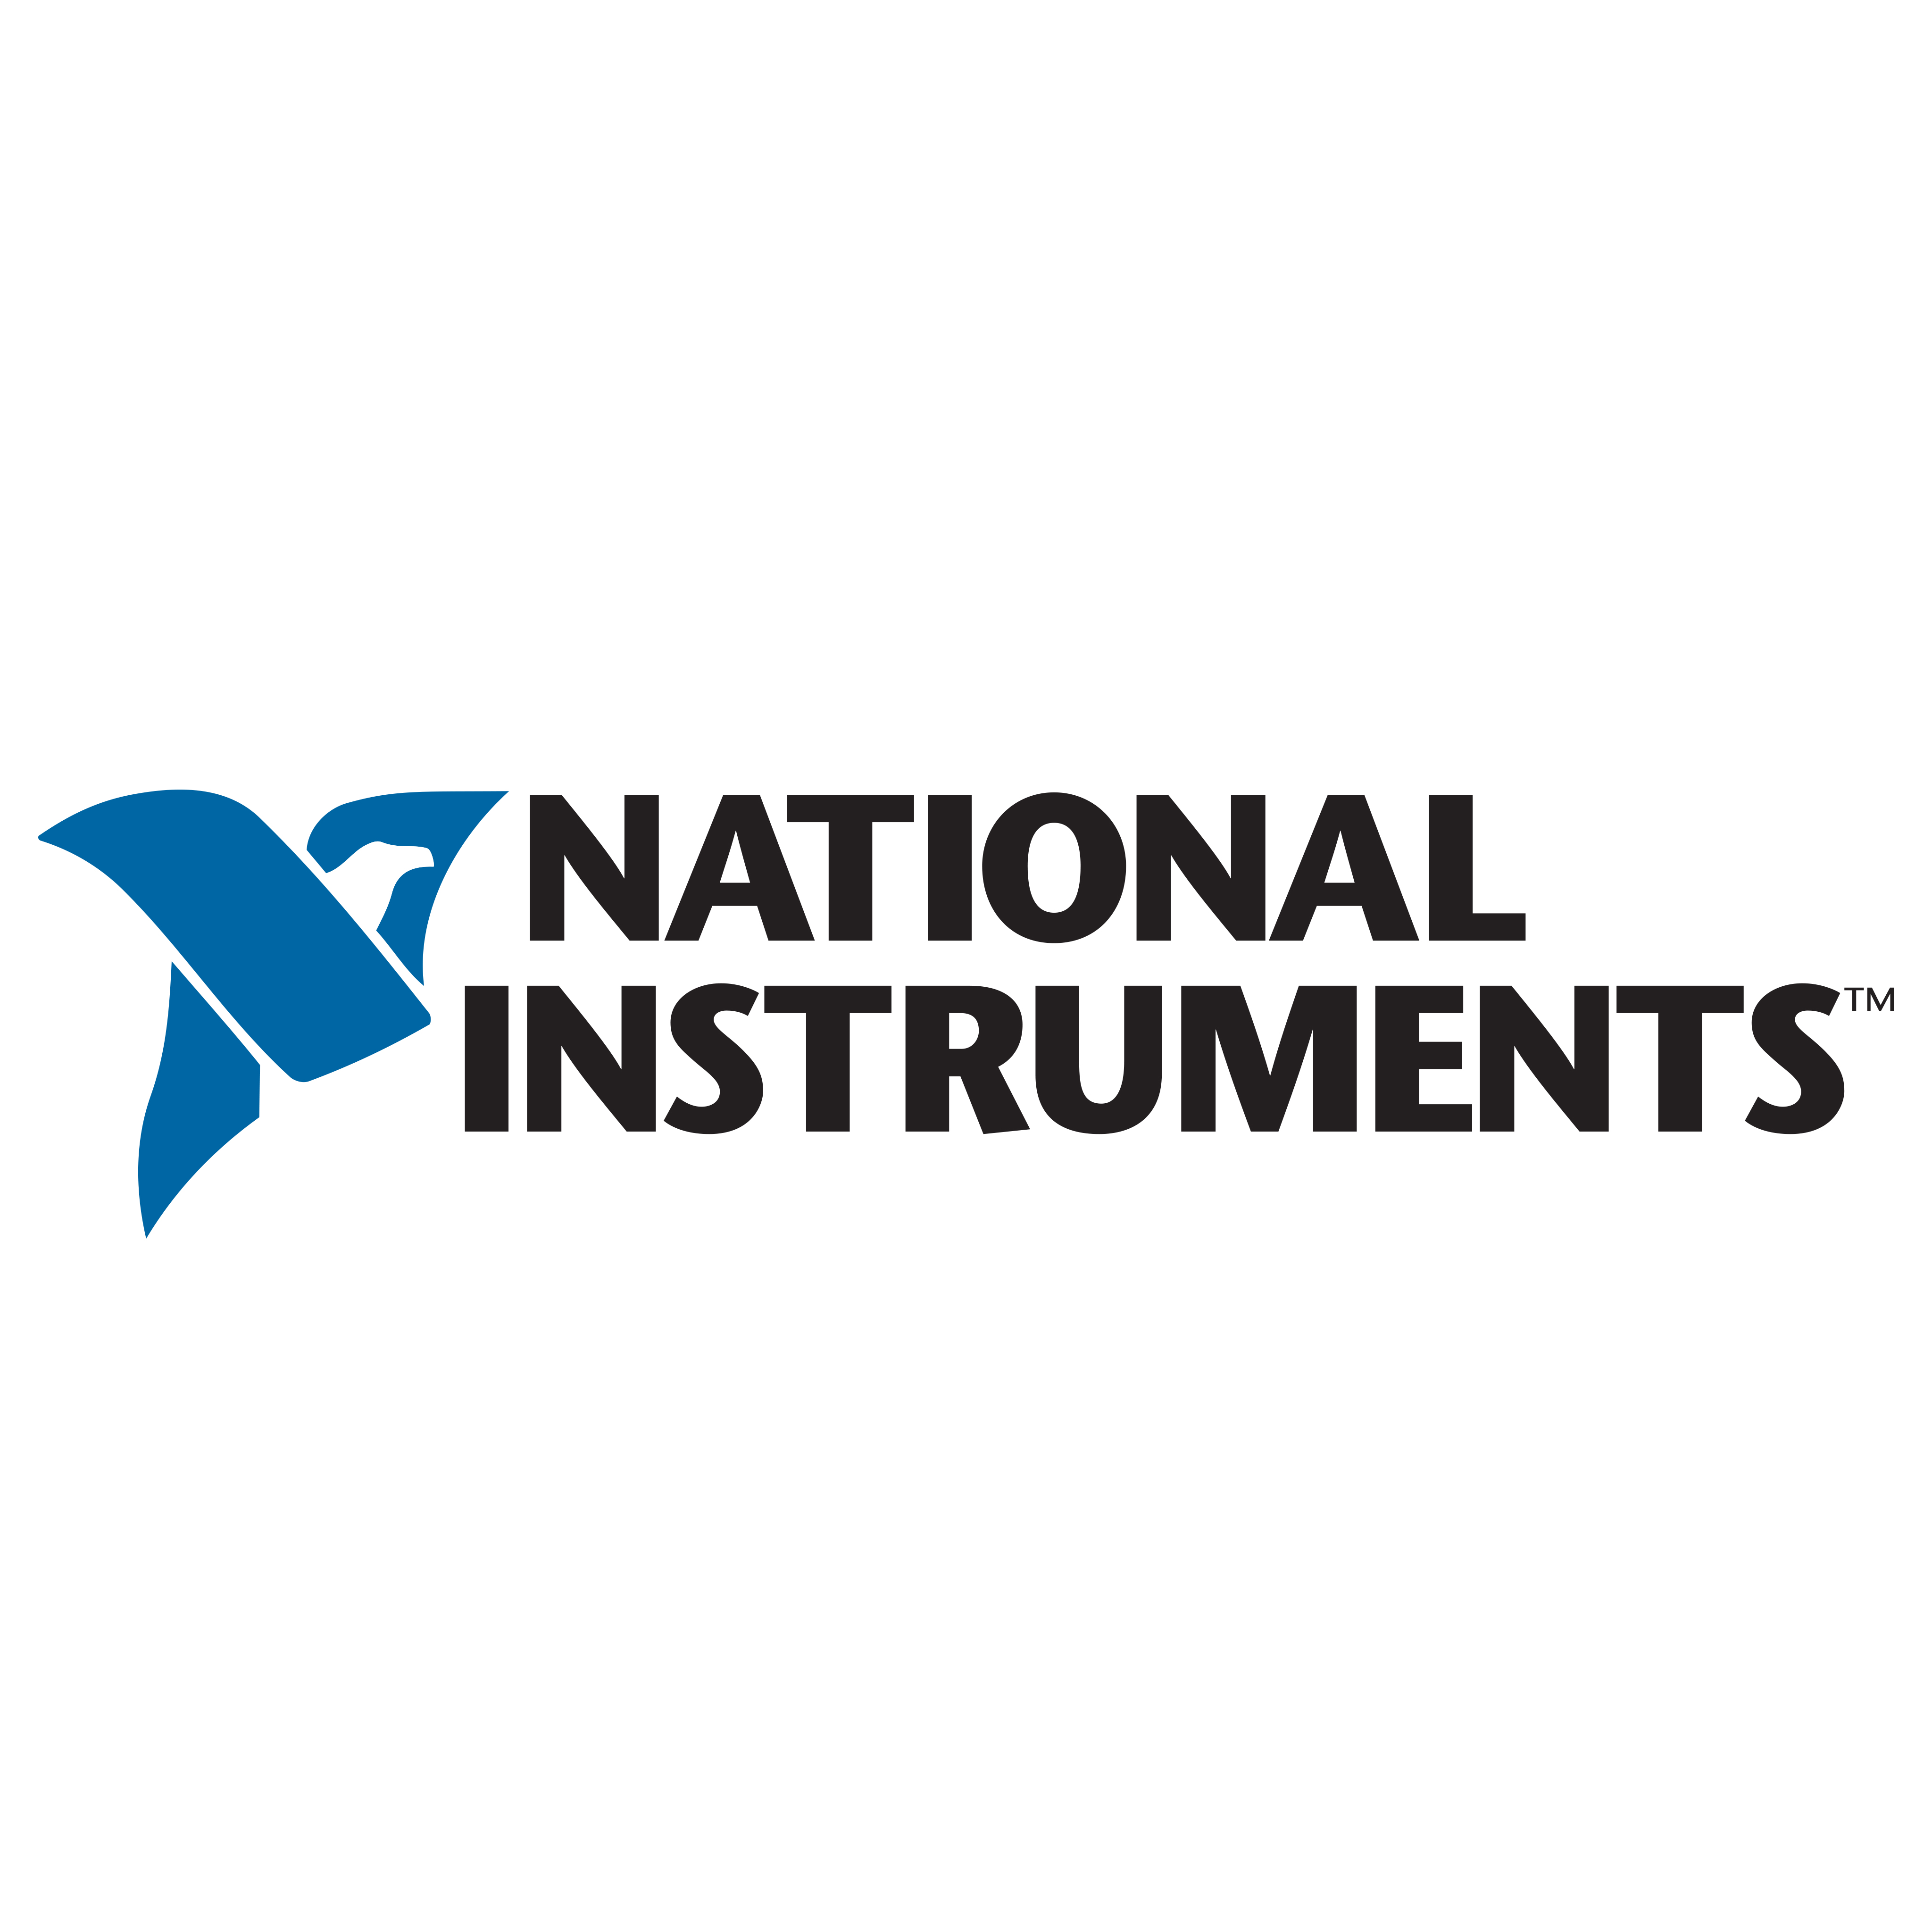 LabVIEW - NI Community - National Instruments